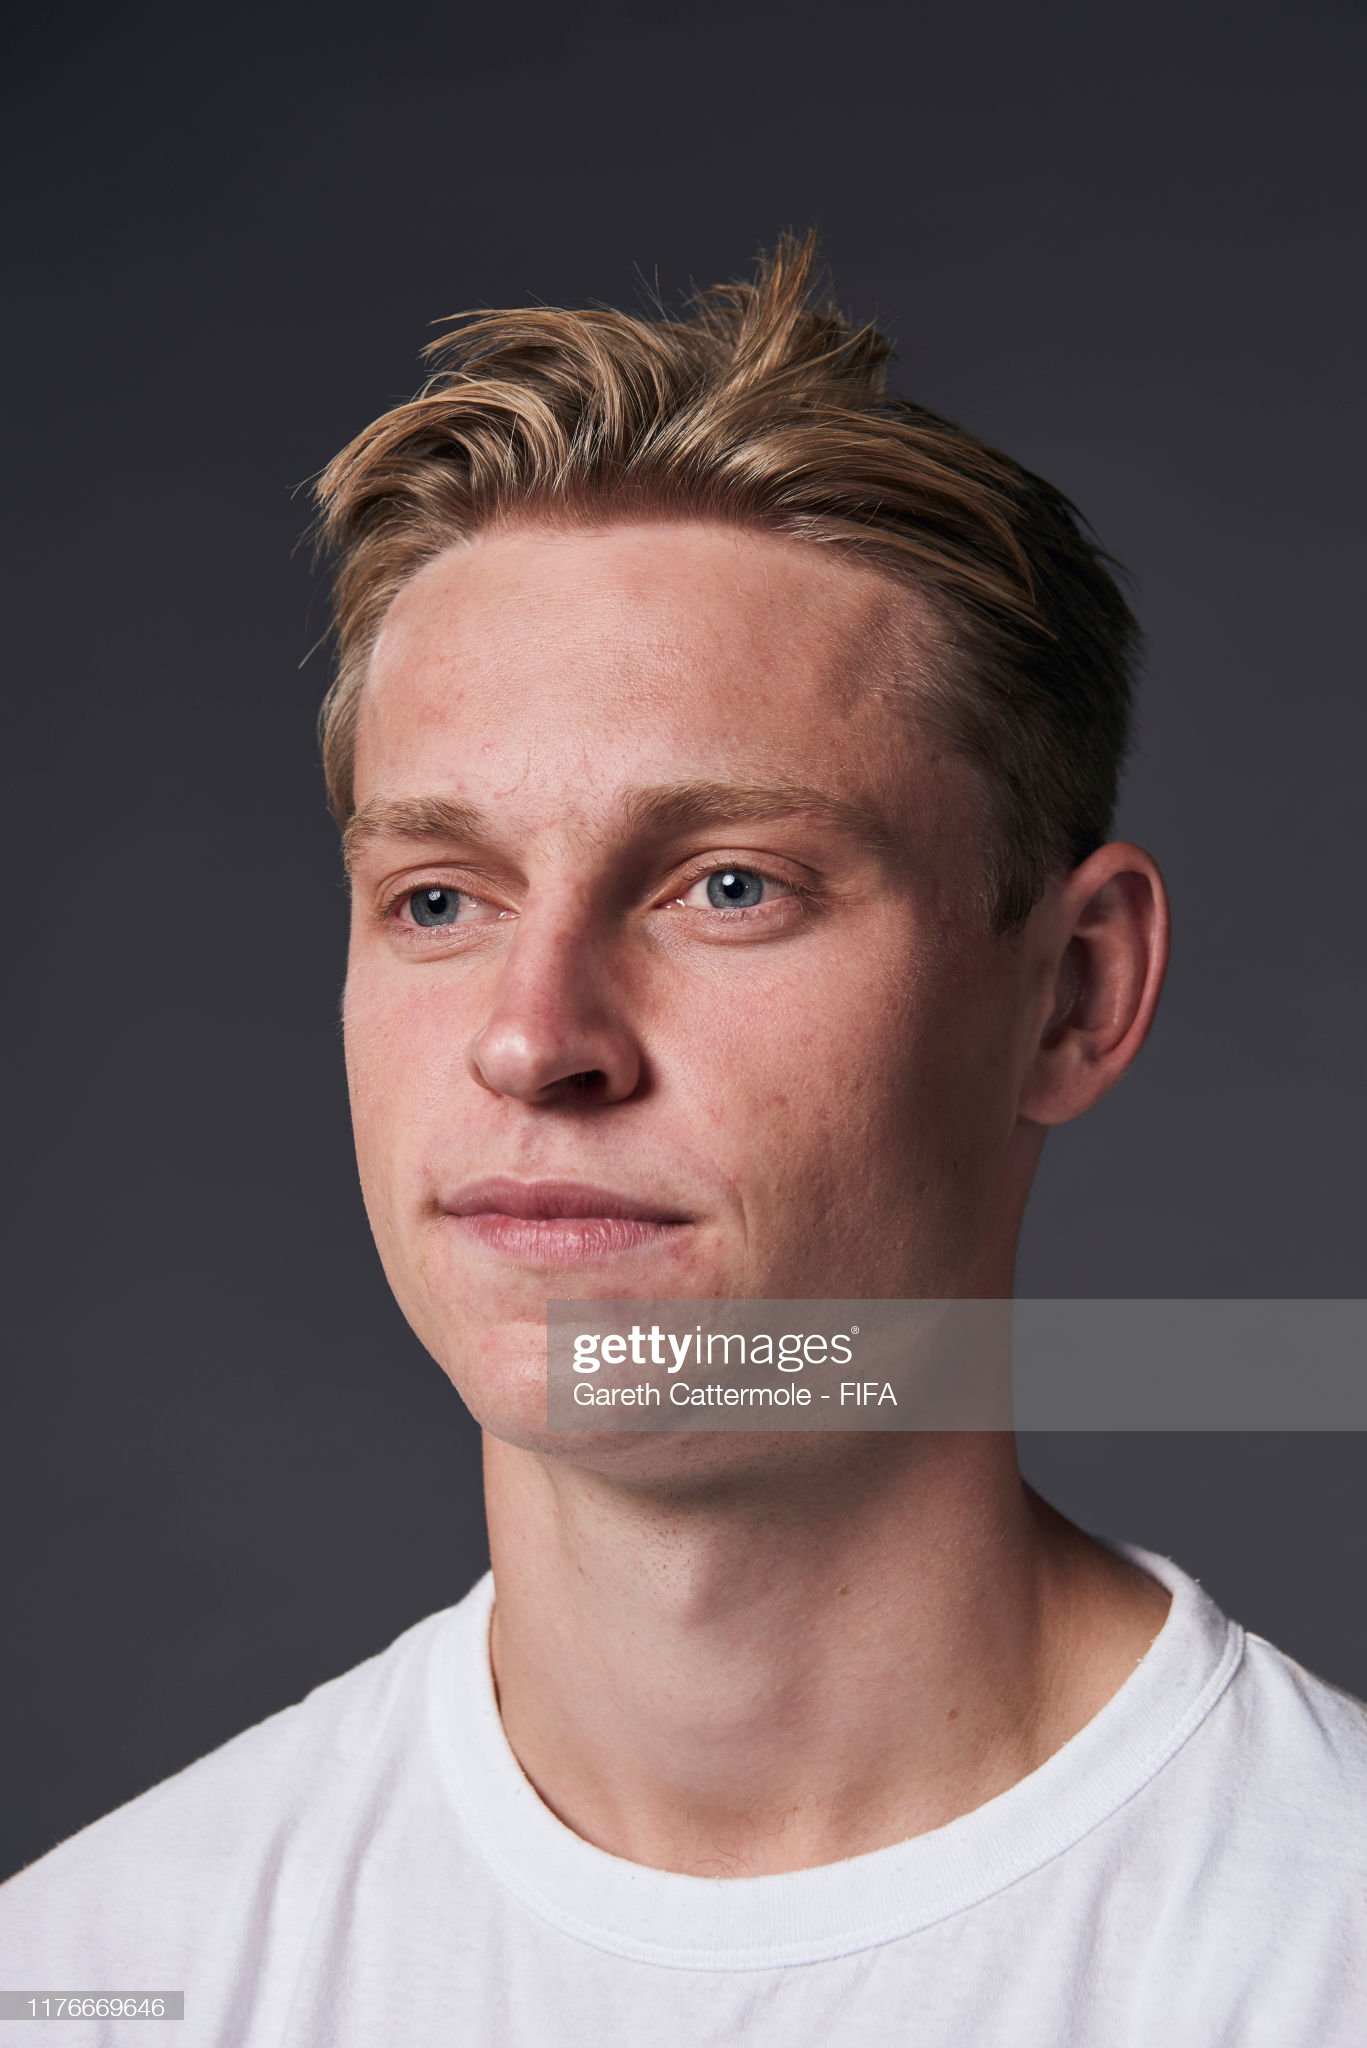 The Best FIFA Football Awards 2019 Fifpro-mens-world11-award-frenkie-de-jong-of-barcelona-and-netherland-picture-id1176669646?s=2048x2048